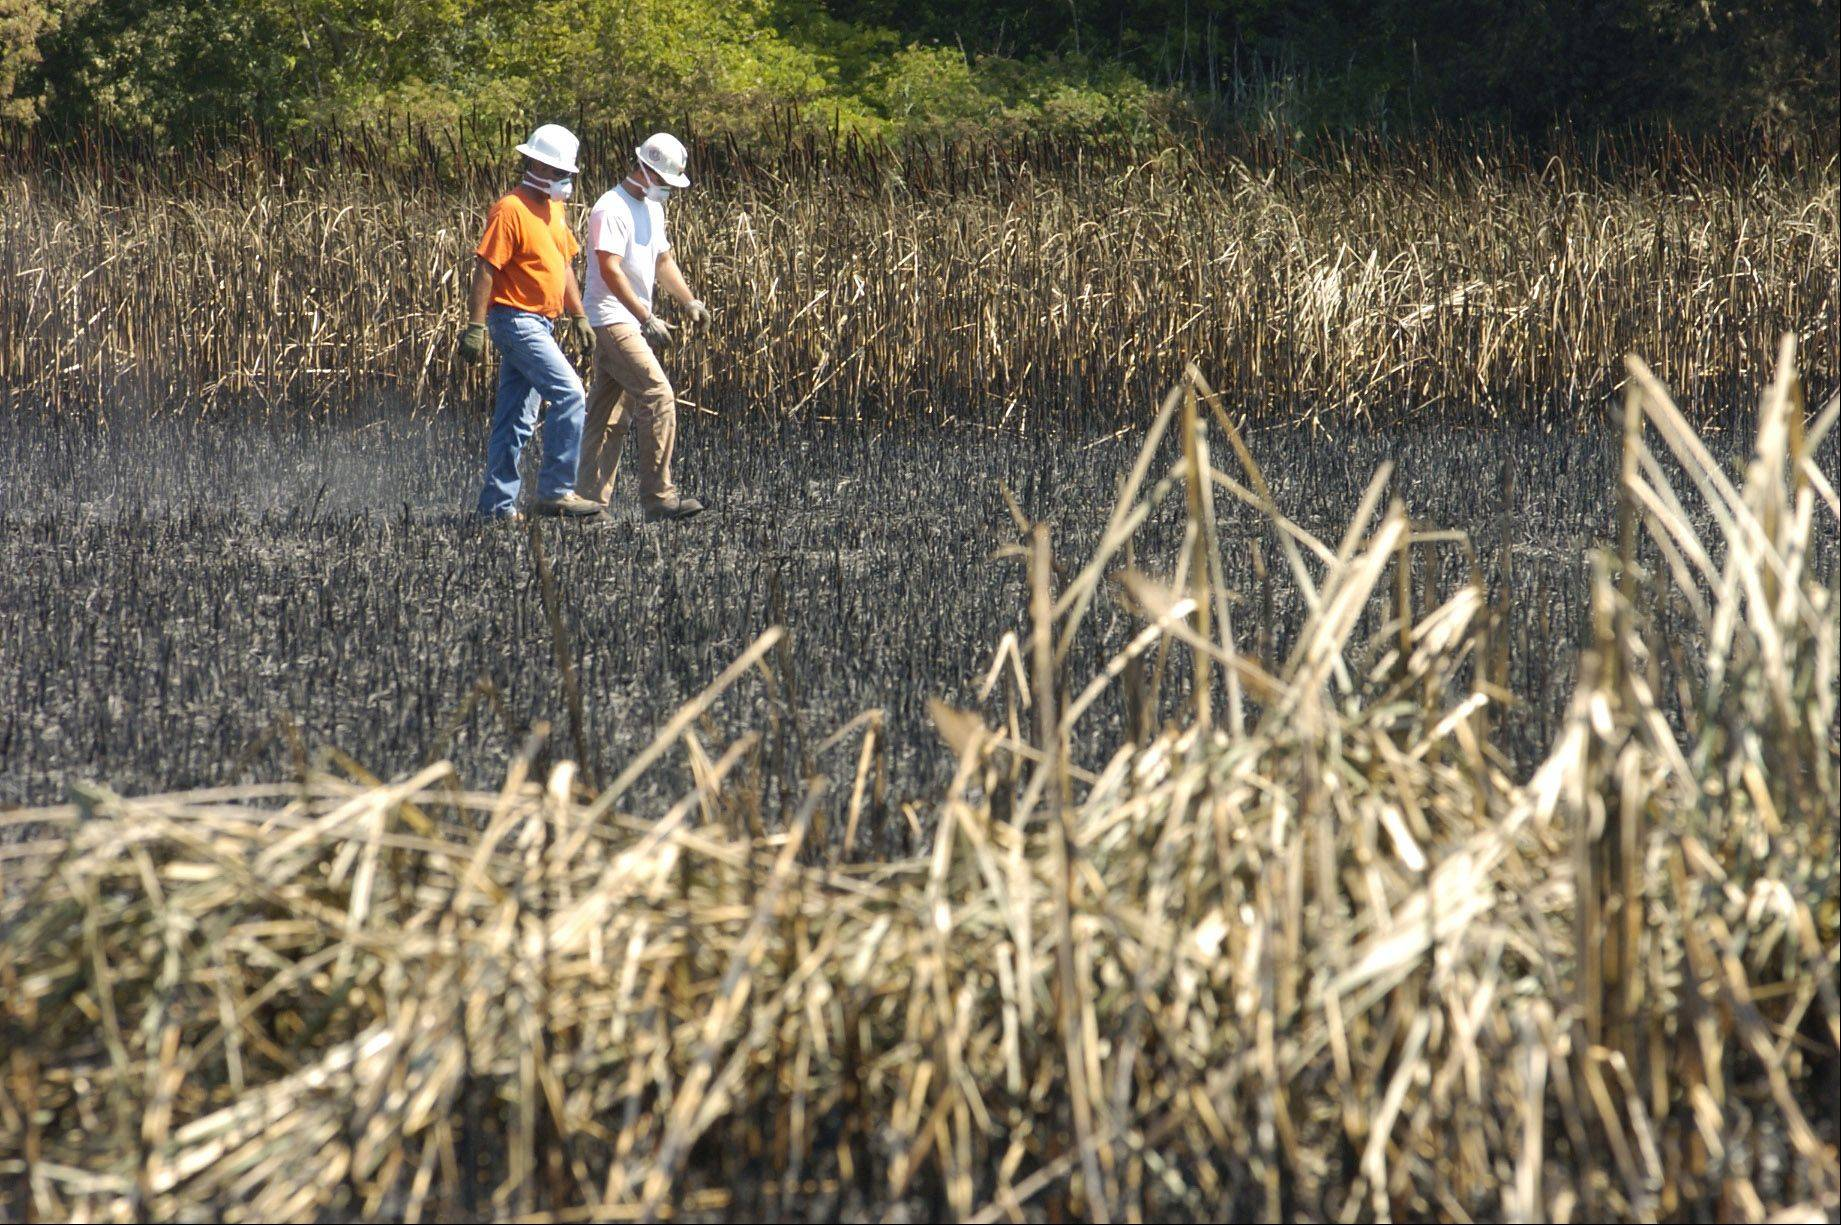 A ComEd crew surveys the damage to the field the day after the Buffalo Grove brush fire.